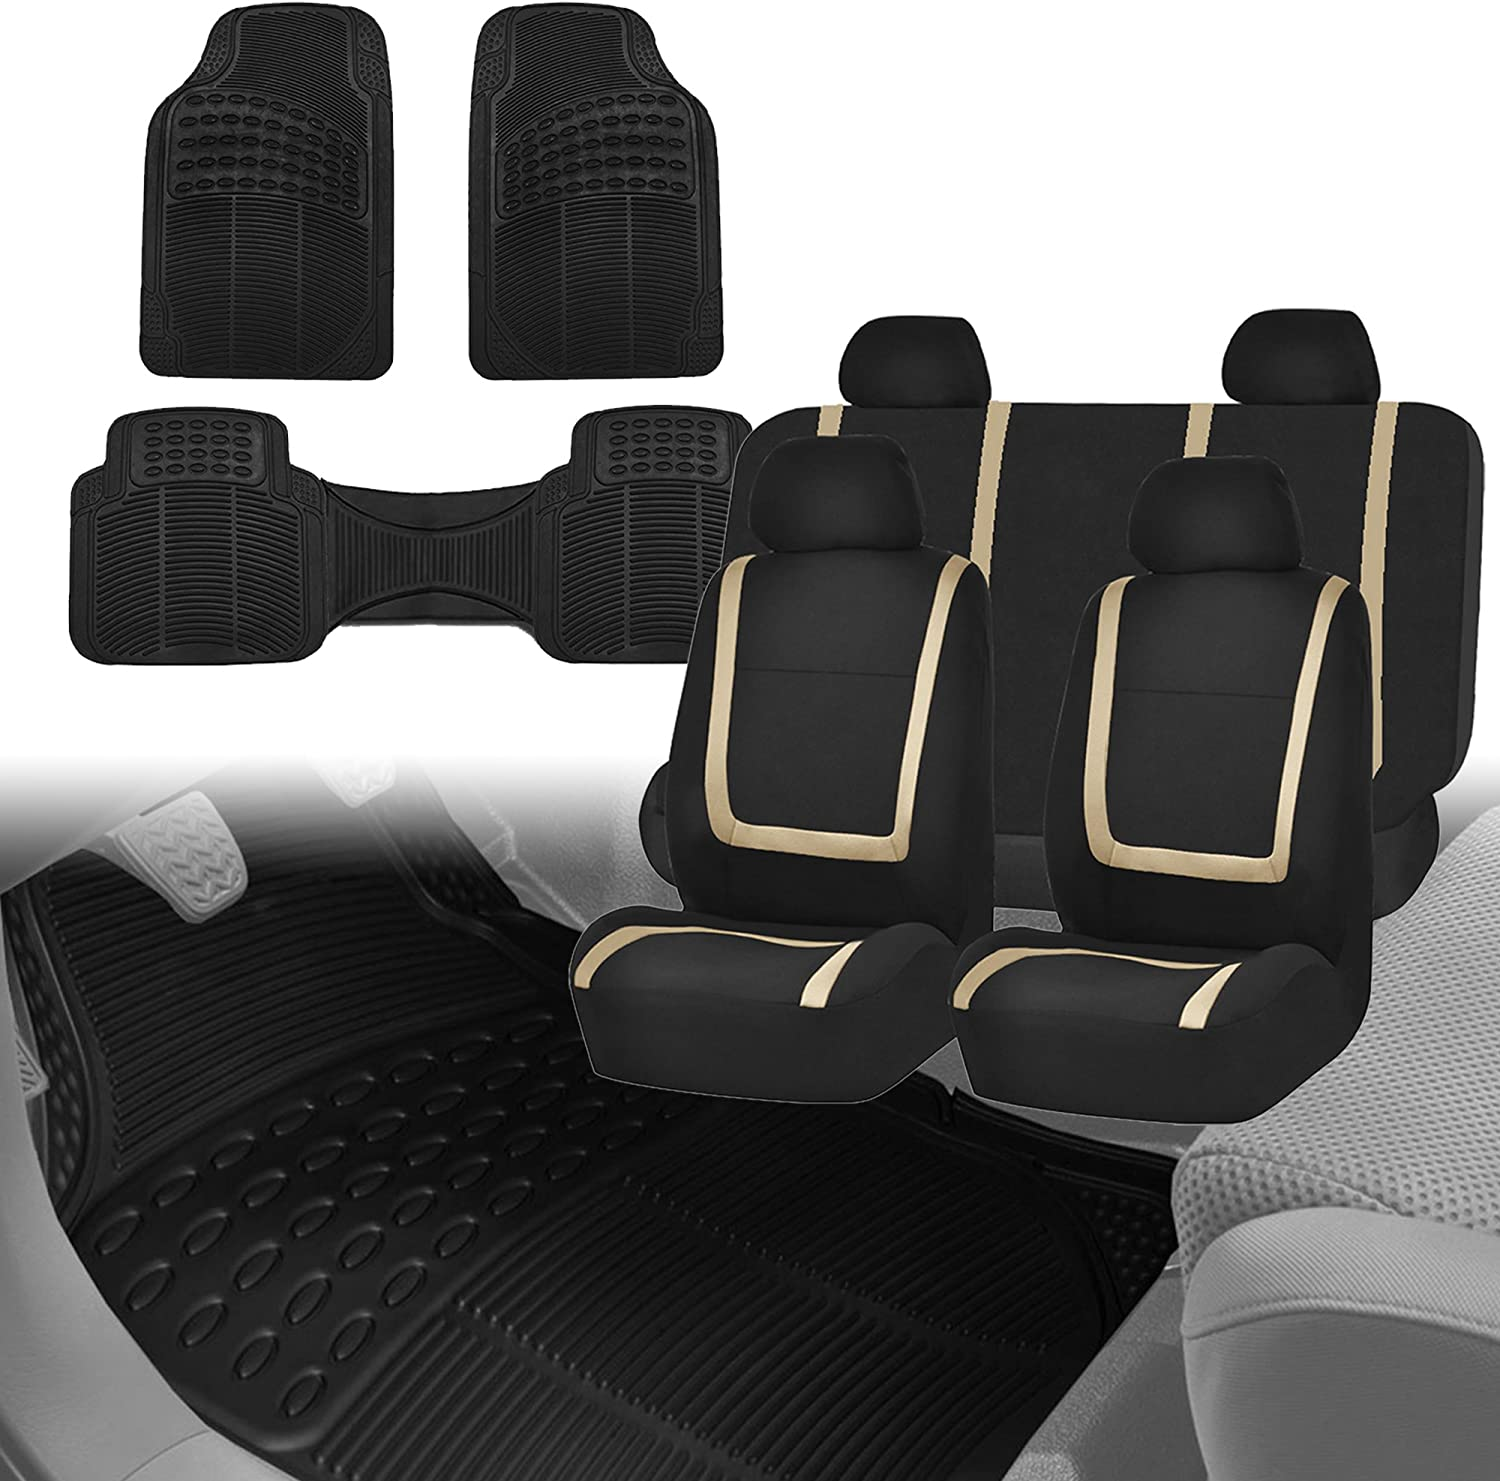 FH Group FH-FB032114 Unique Flat Cloth Car Seat Covers, Beige/Black with F11306 Black Vinyl Floor Mats- Fit Most Car, Truck, SUV, or Van